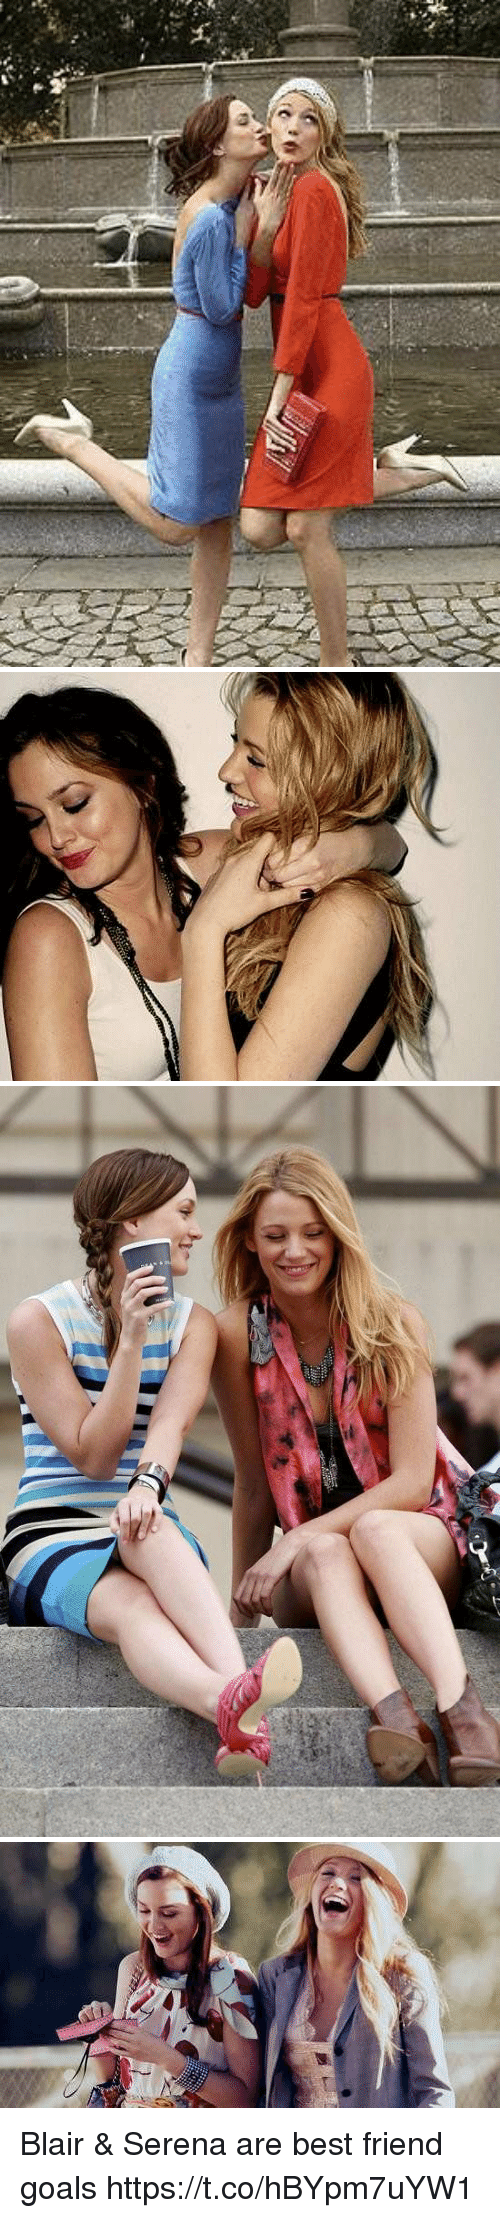 Best Friend, Goals, and Memes: Blair & Serena are best friend goals https://t.co/hBYpm7uYW1